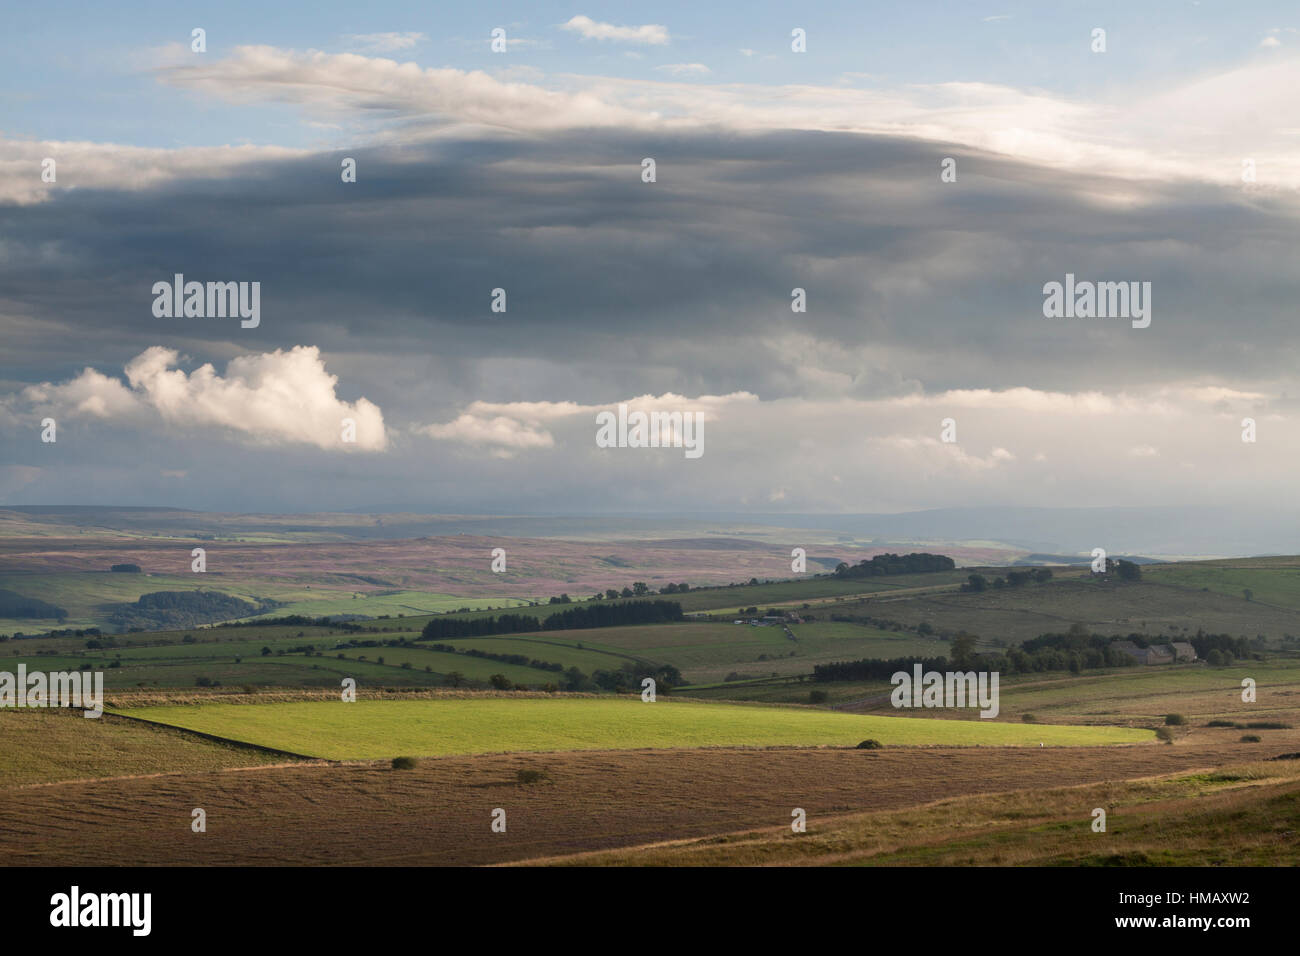 Hadrians Wall: the view to the south from Highshield Crags, looking across the South Tyne valley towards the hills - Stock Image